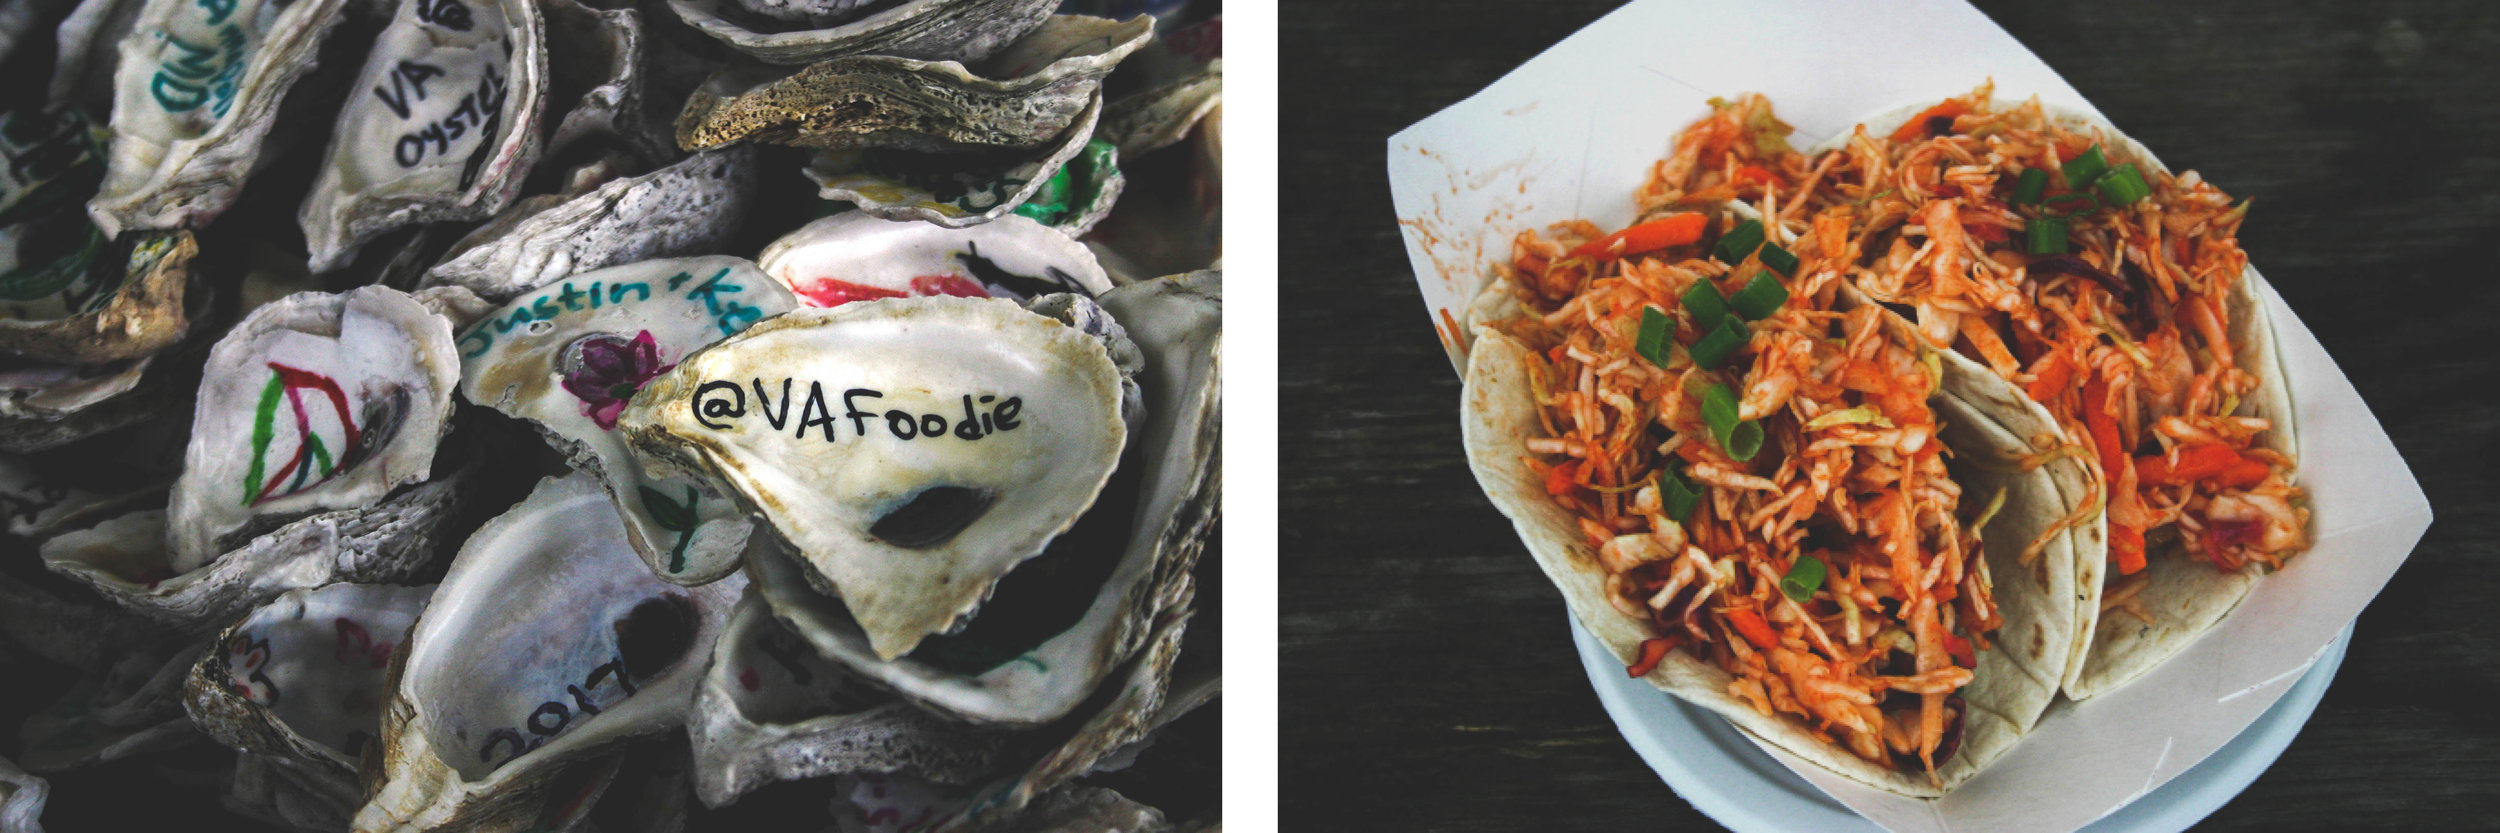 Personalized oyster shells at Dog and Oyster Vineyard/ Fried oyster tacos from Byrd's Seafood - Image credit: VAfoodie